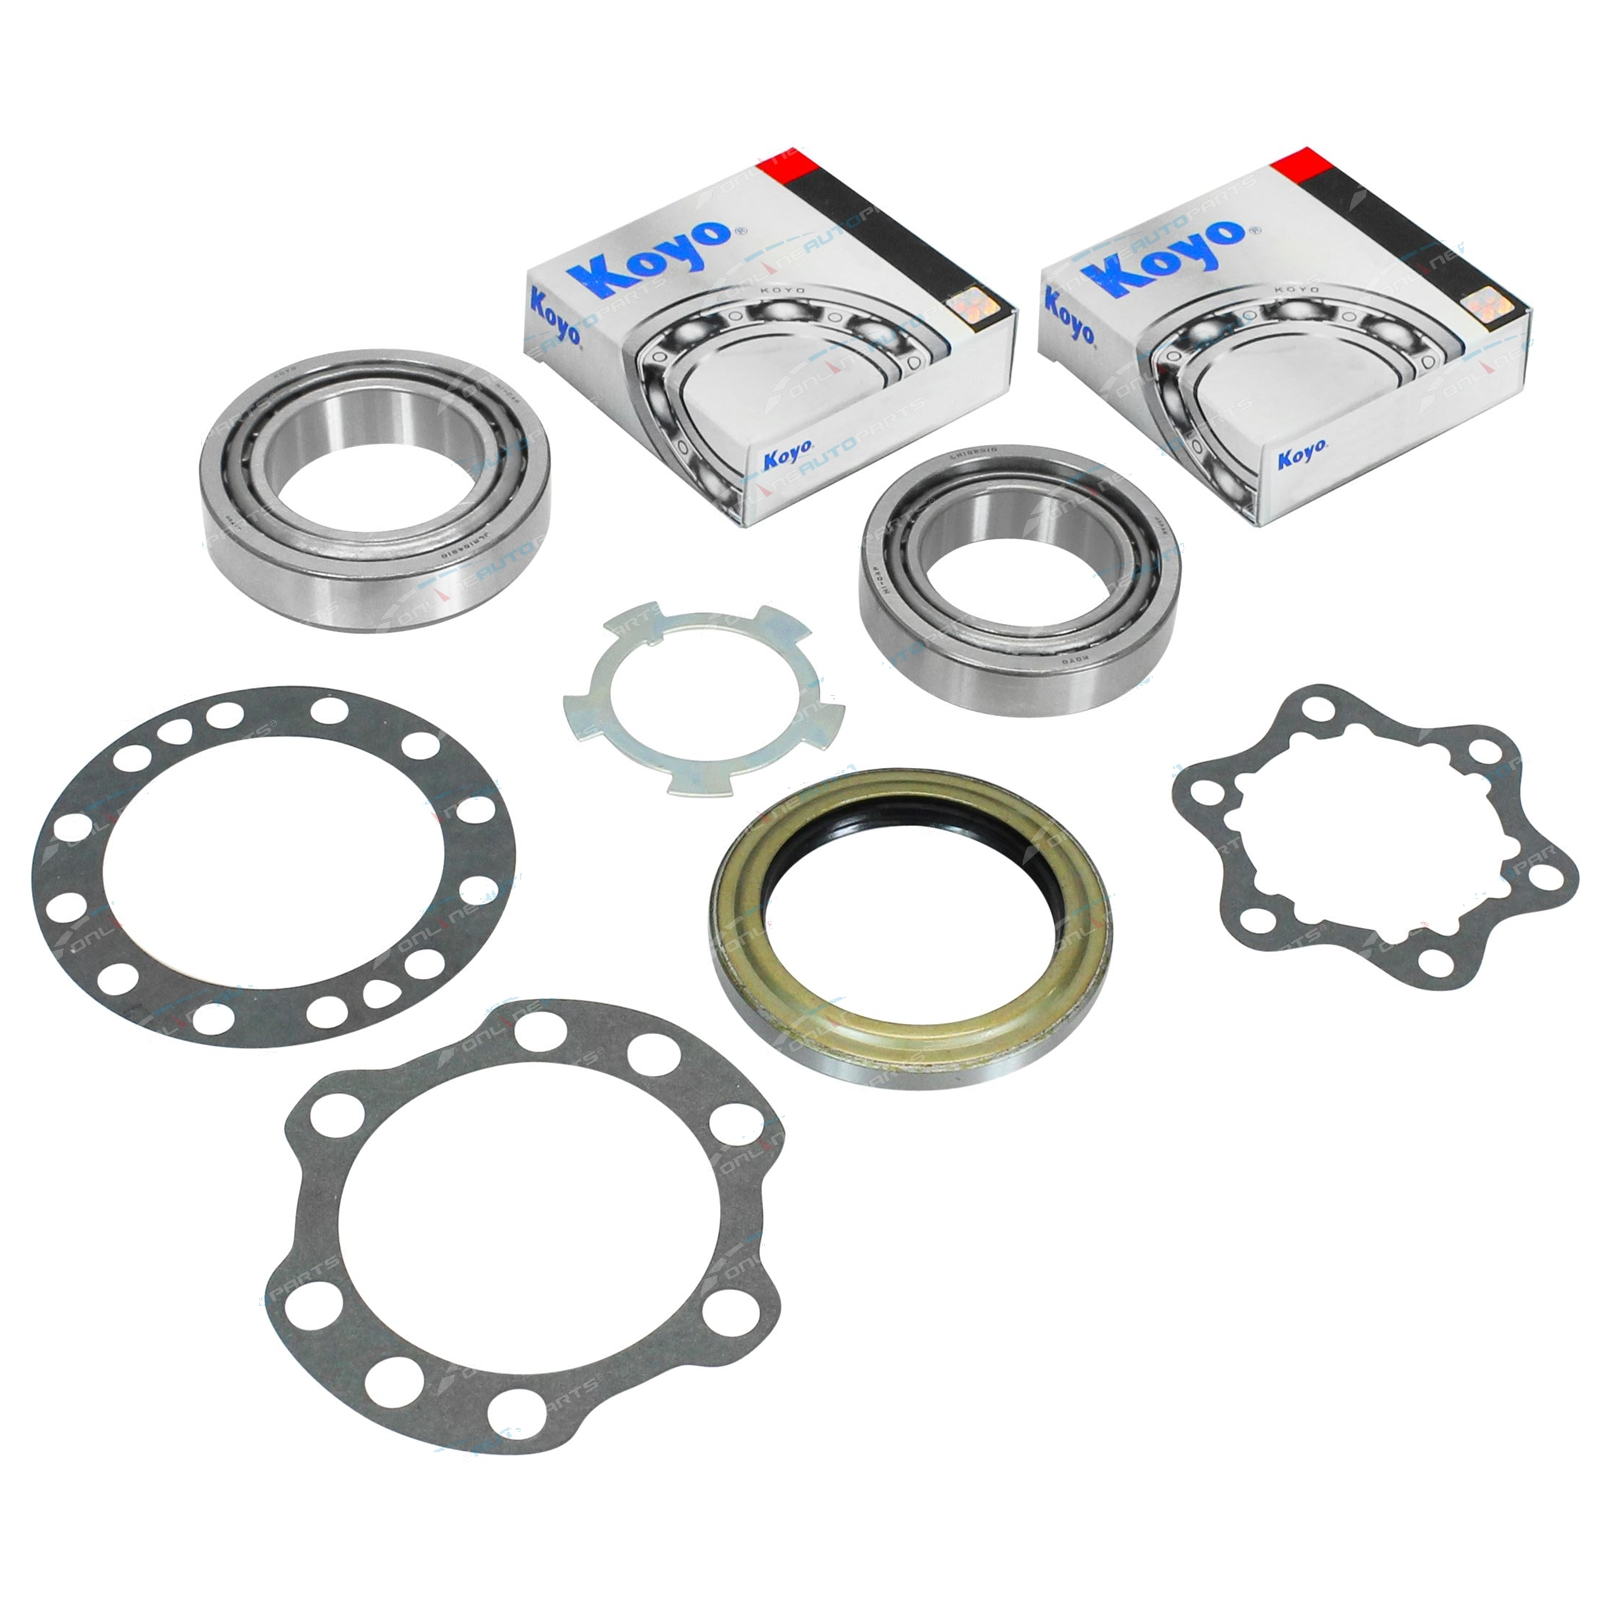 Front Wheel Bearing Kit KOYO suits Toyota Landcruiser 40 60 70 80 Series 4x4